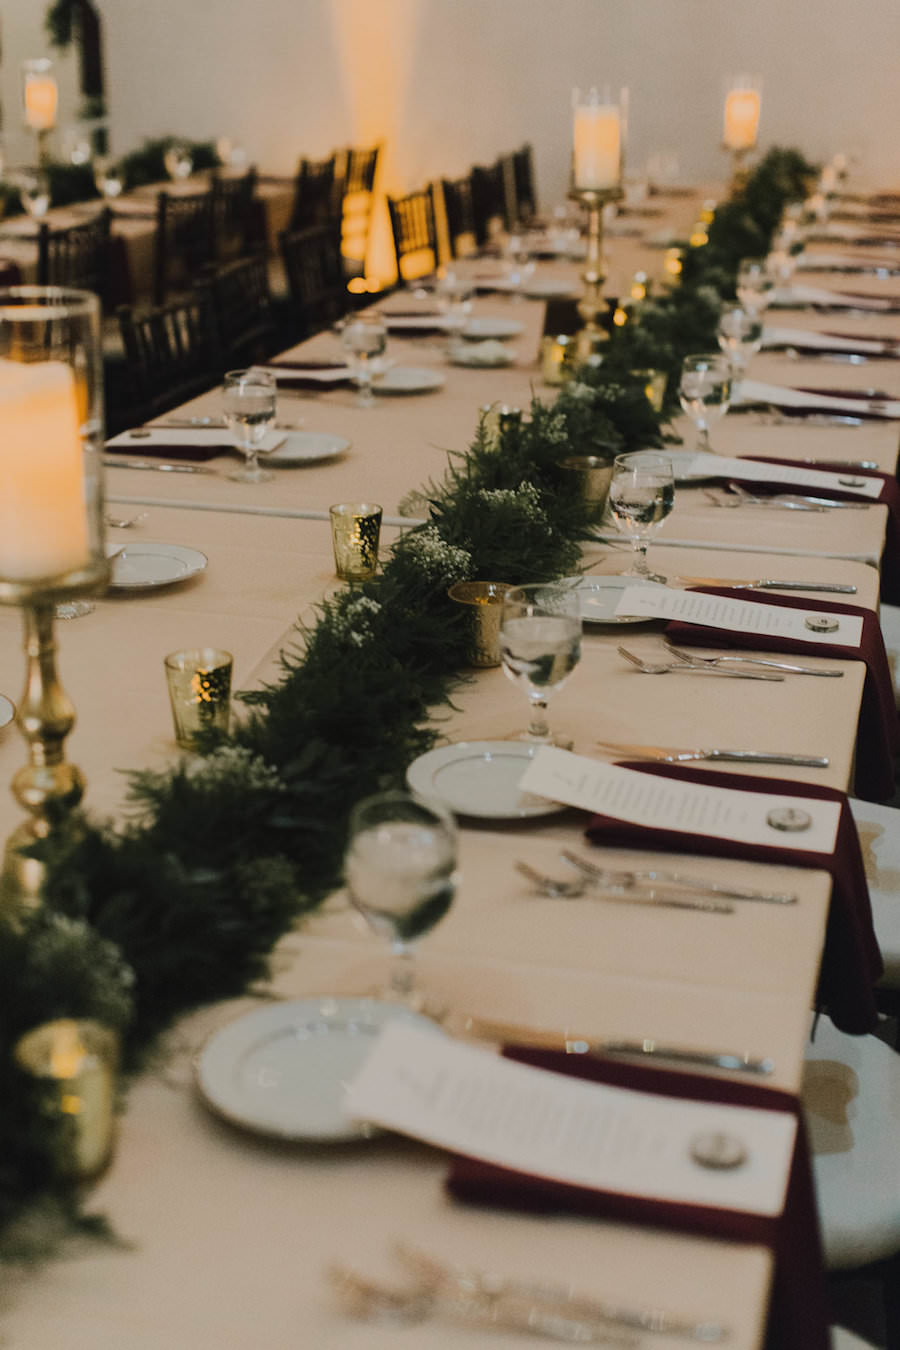 Tampa Wedding Reception Table Decor with Garland Centerpiece Table Runner, and Candles with Gold Stands   Tampa Wedding Planner Blush by Brandee Gaar